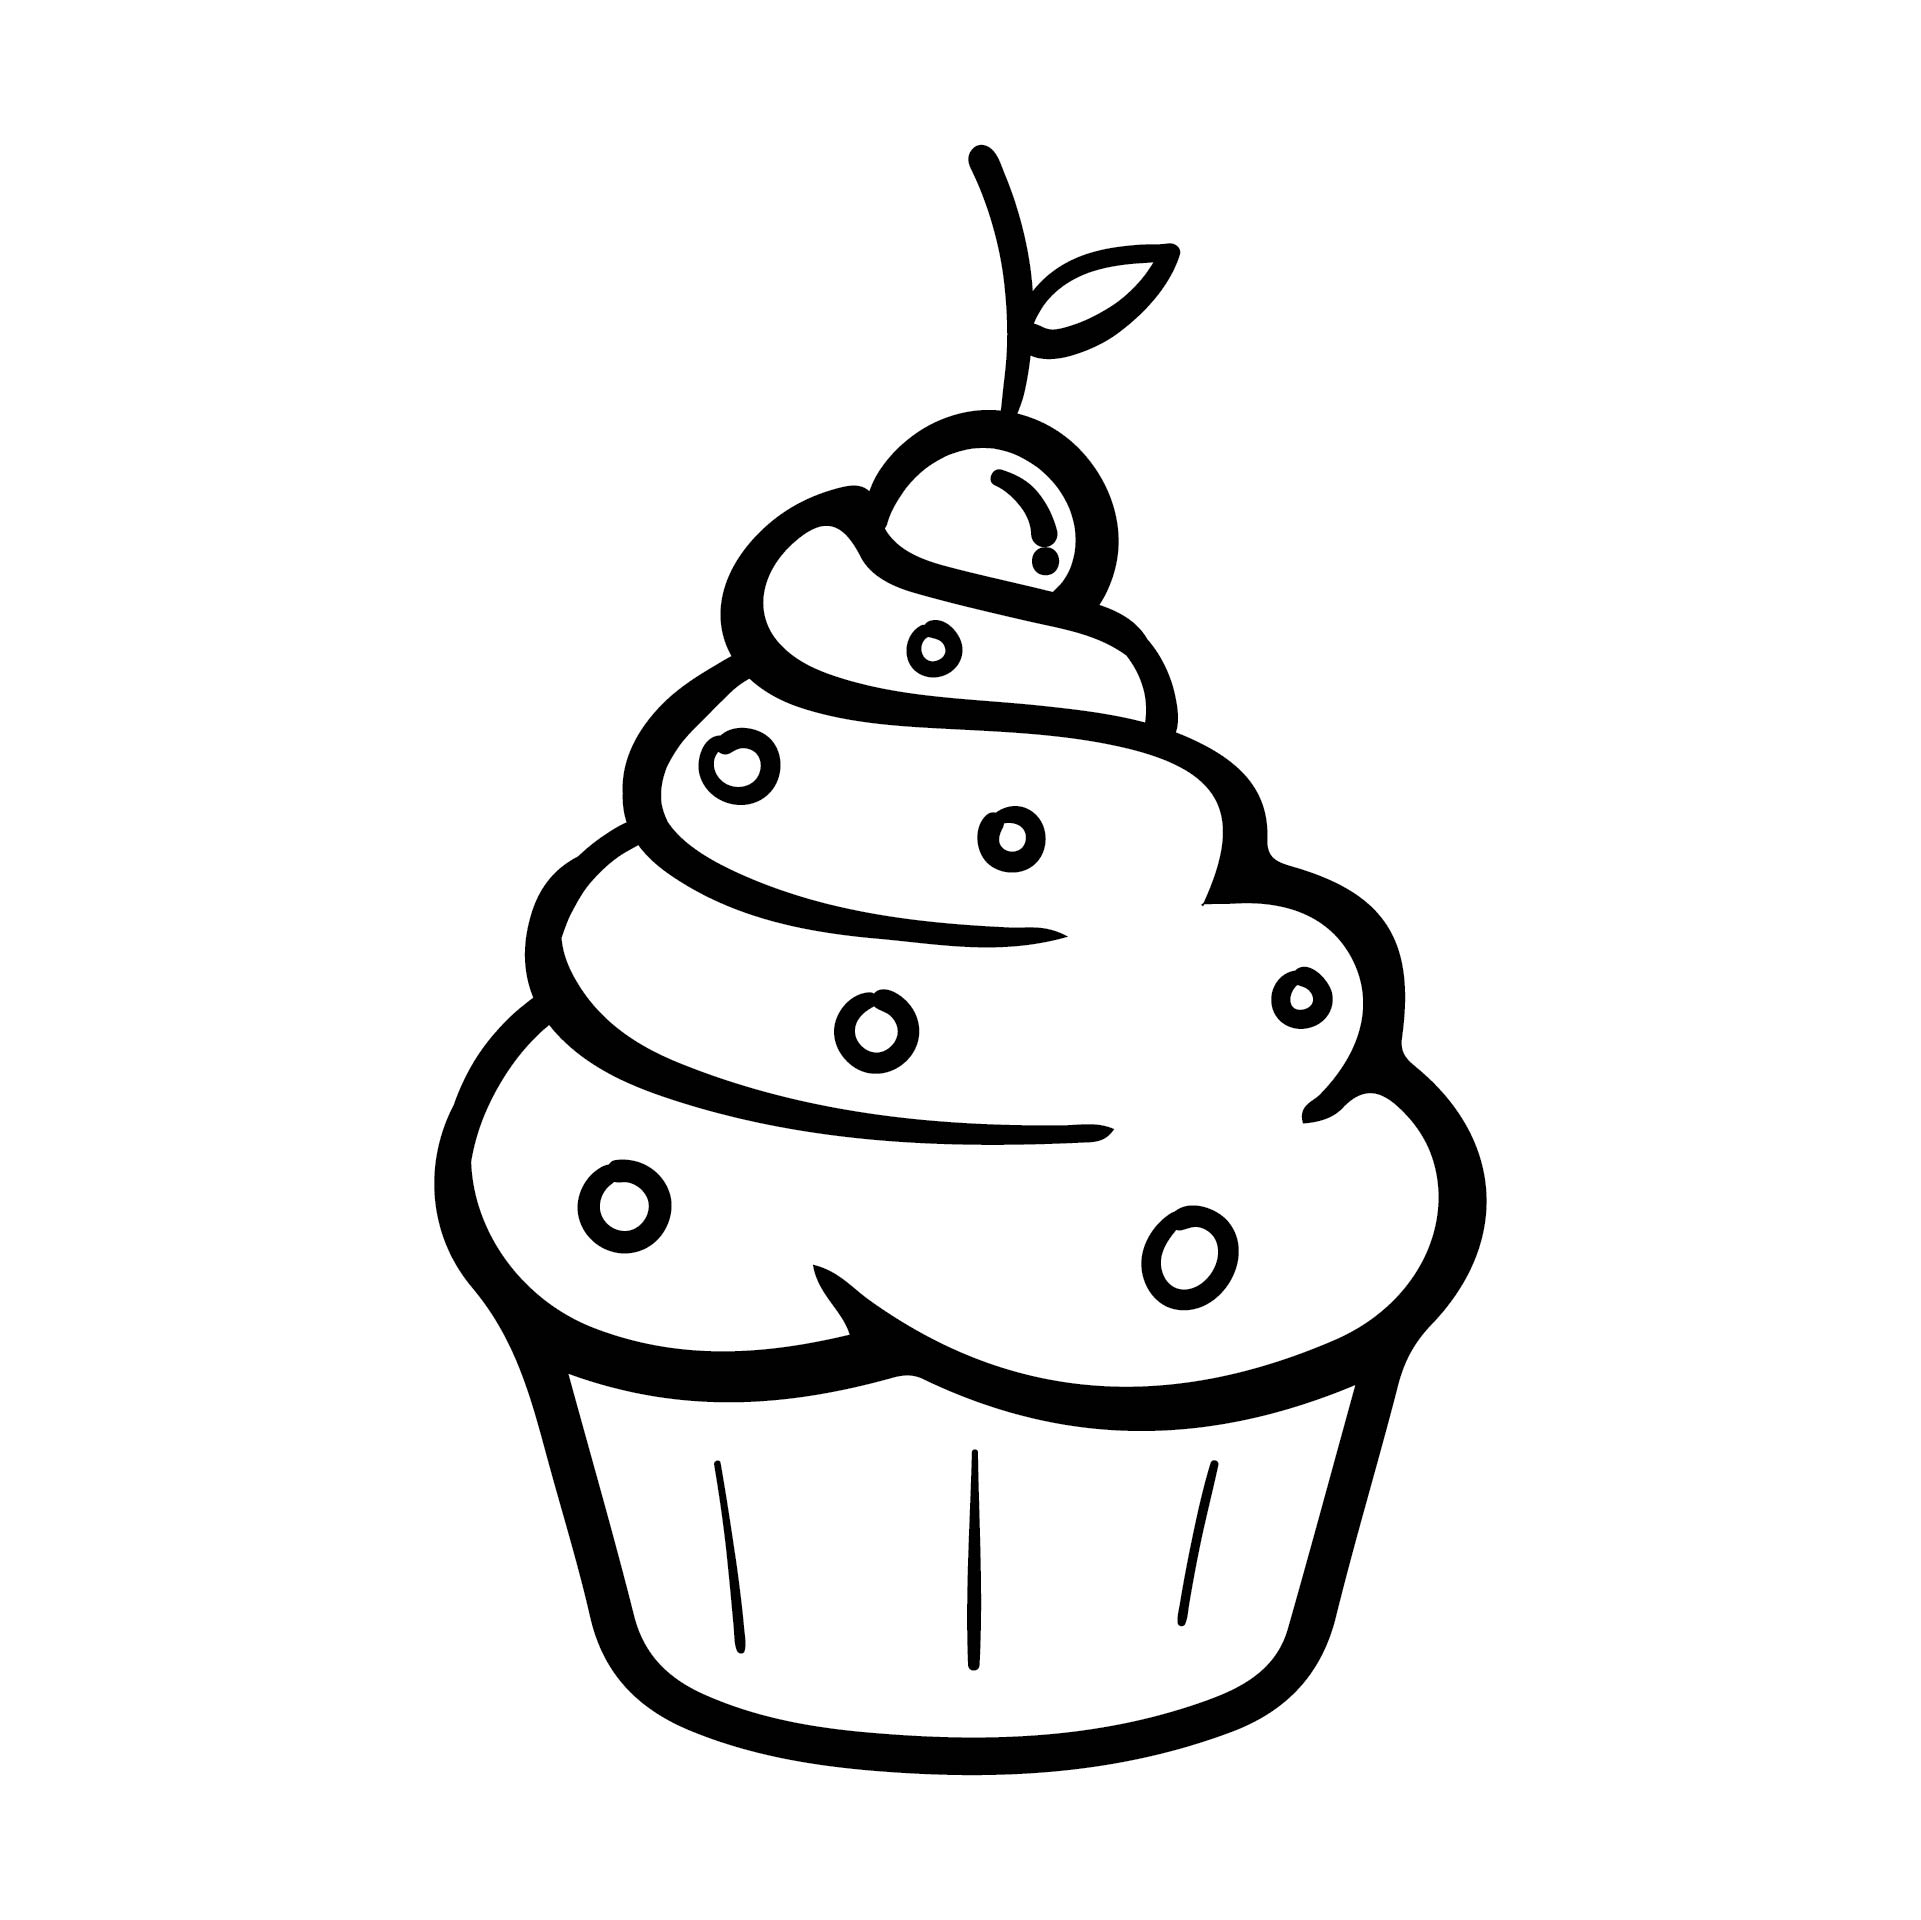 Black and White Cupcake Outline